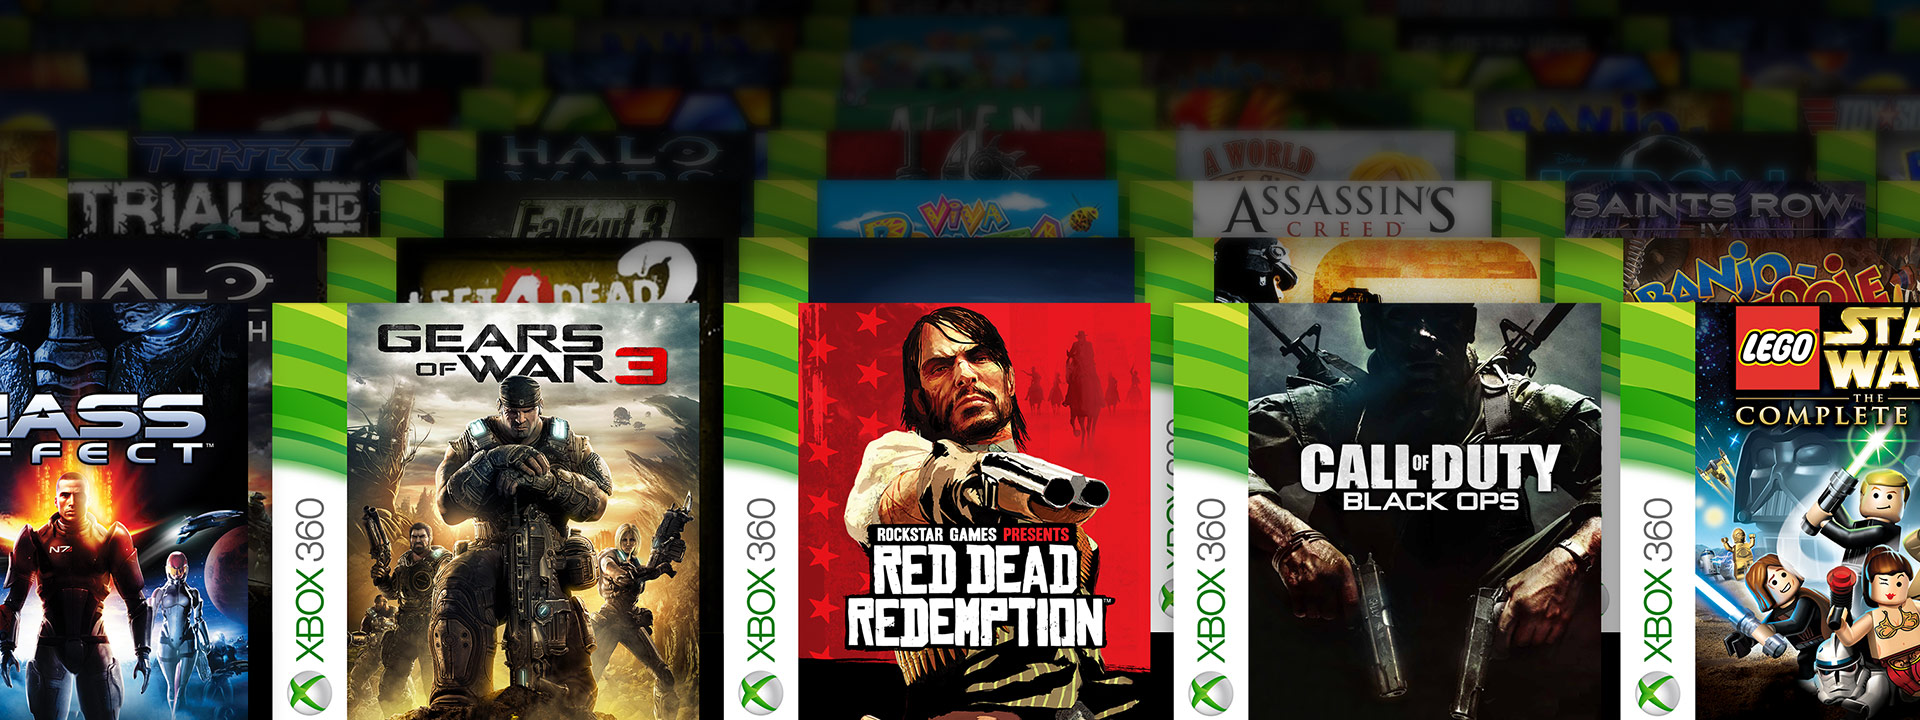 Experimente os jogos do Xbox 360 no Xbox One